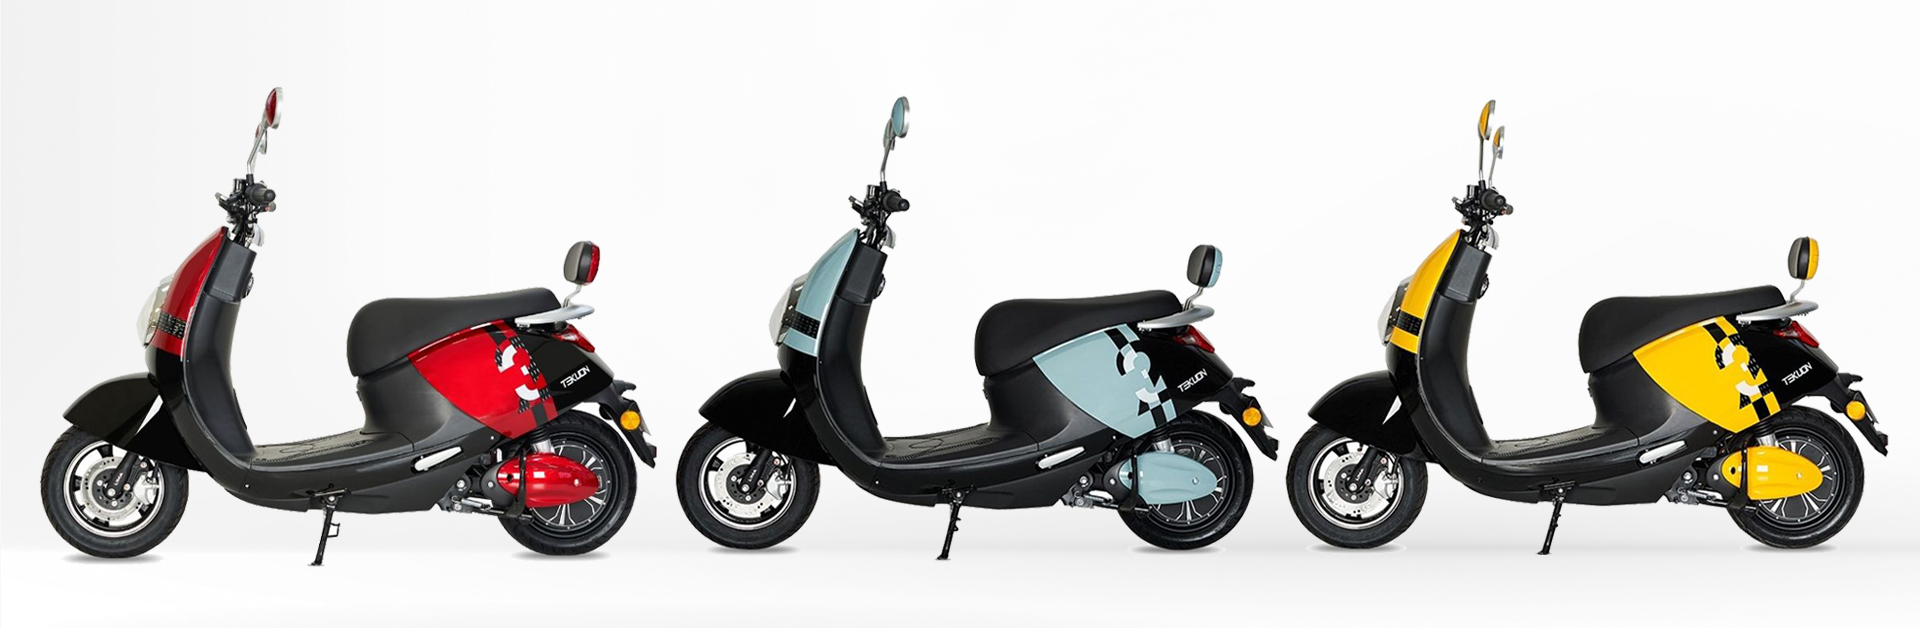 Scooter eléctrico 800W matriculable Moma